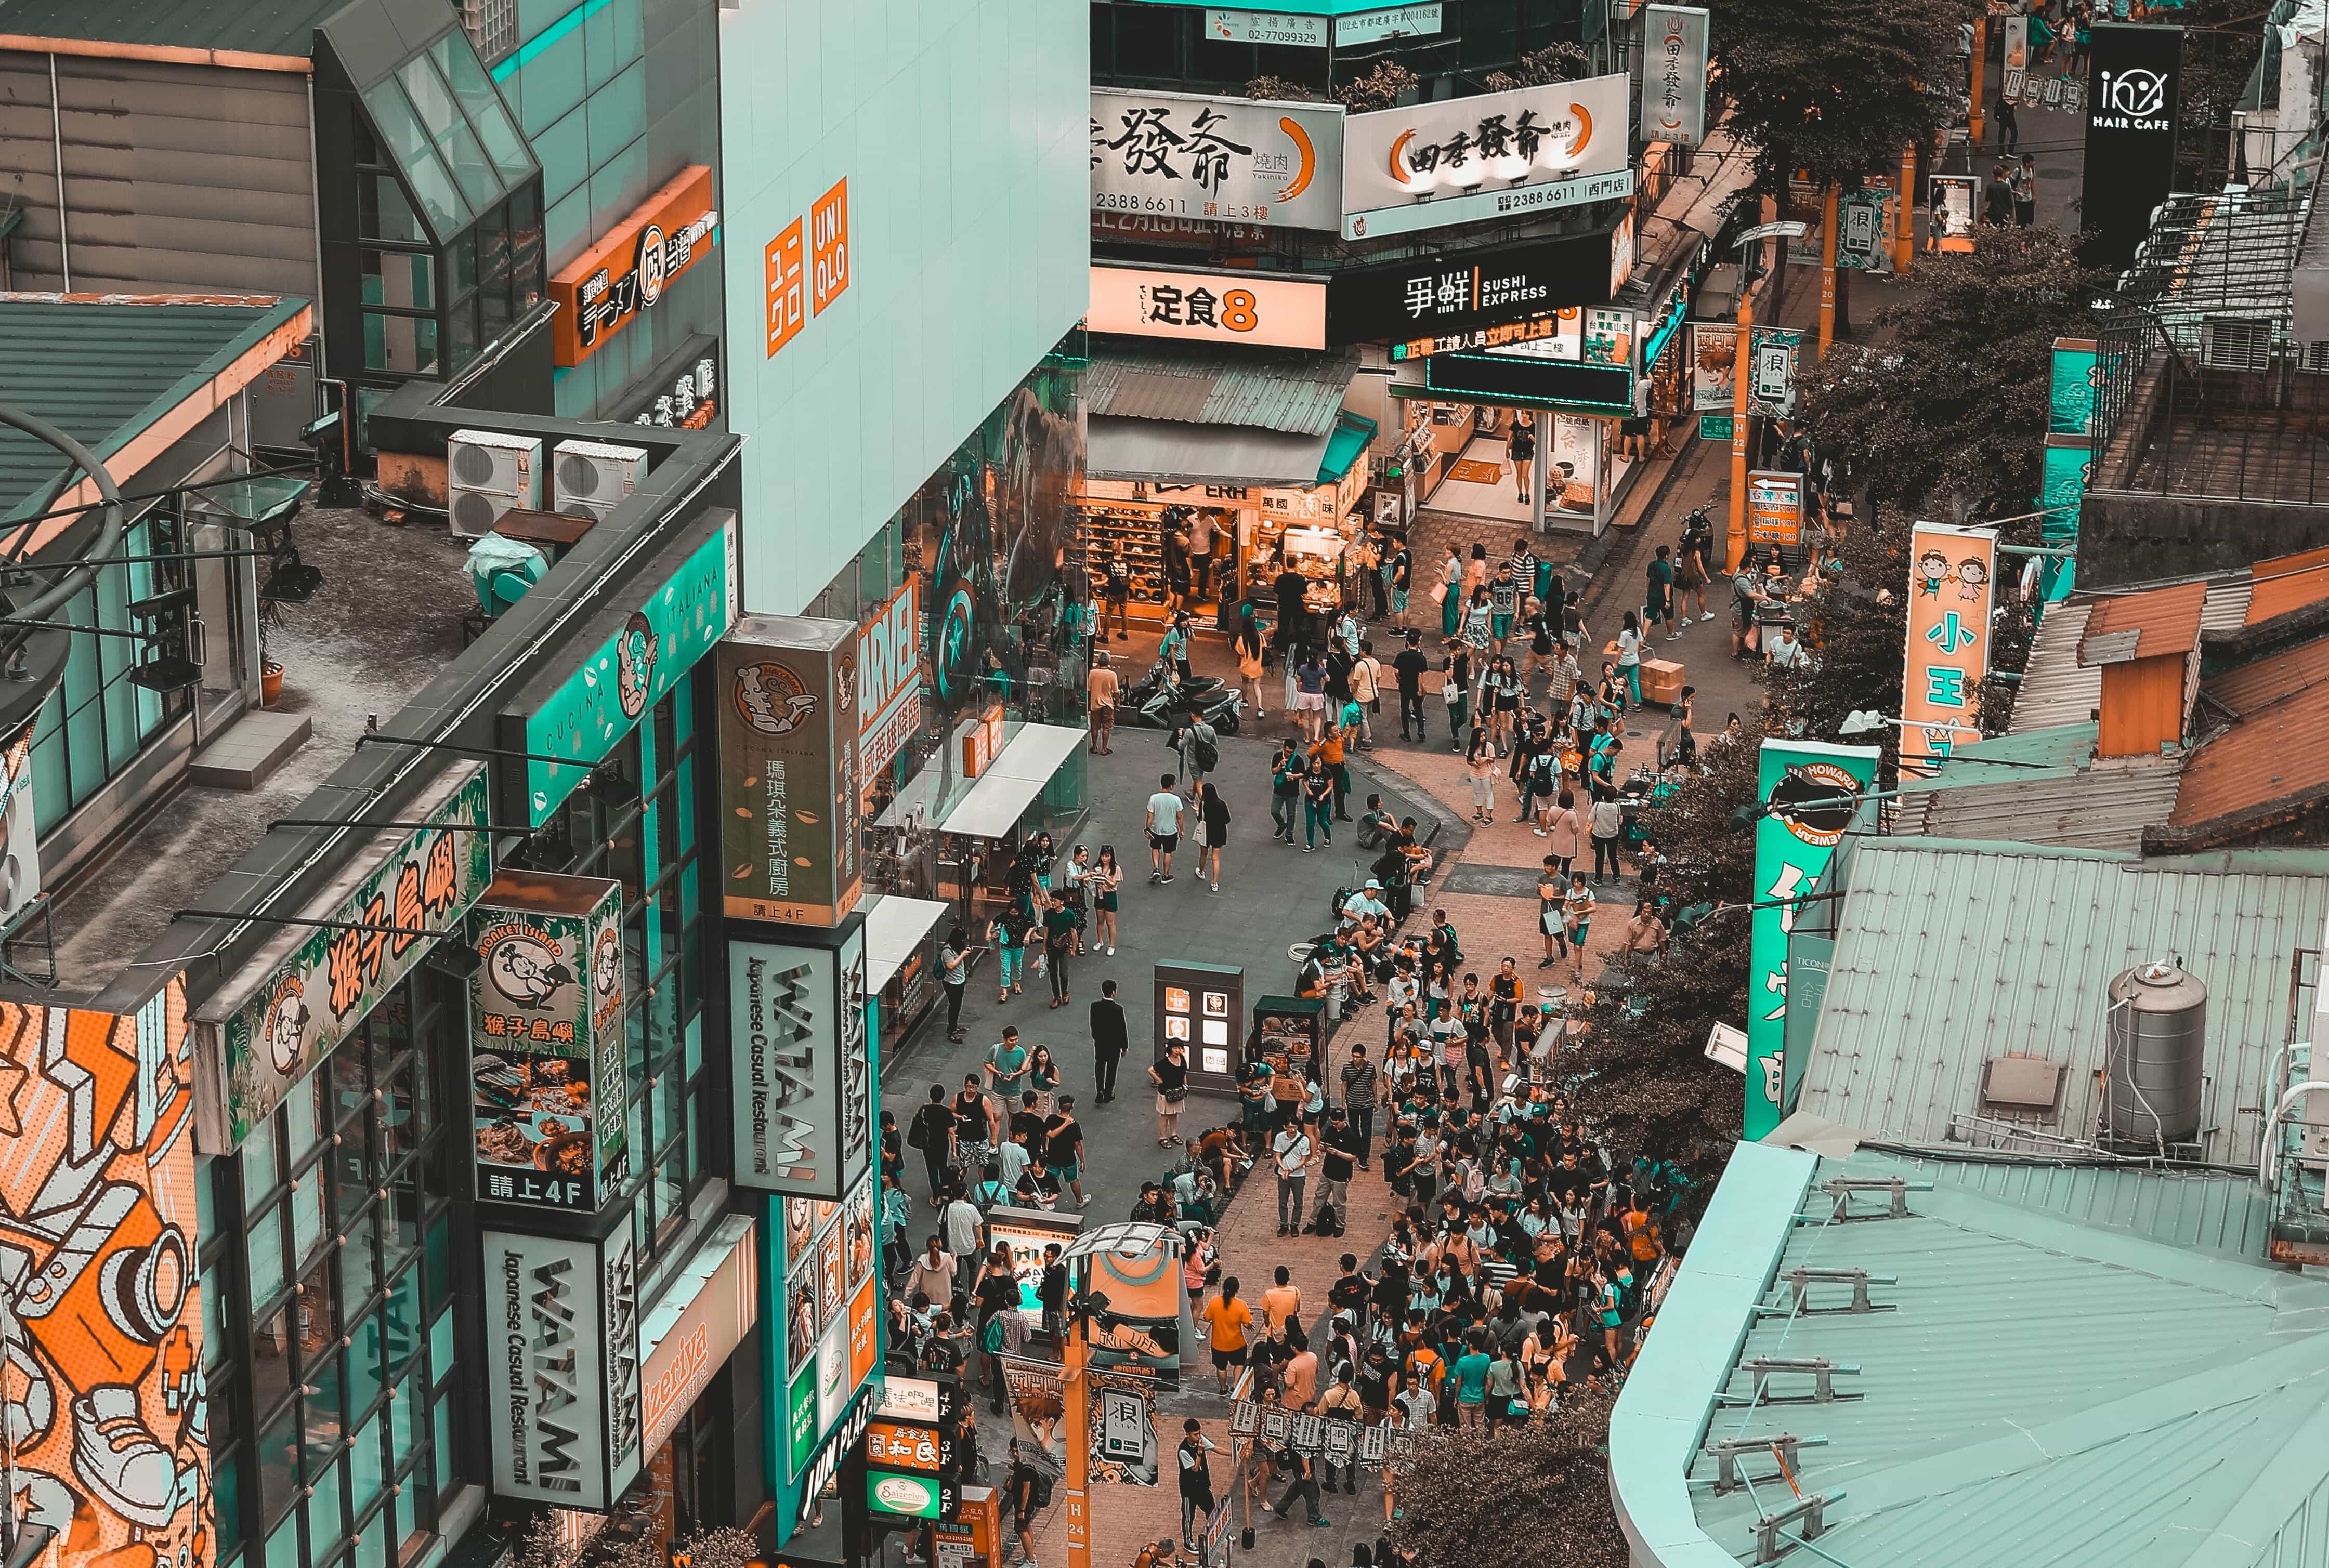 The must-visit destinations in Taiwan outside of the capital